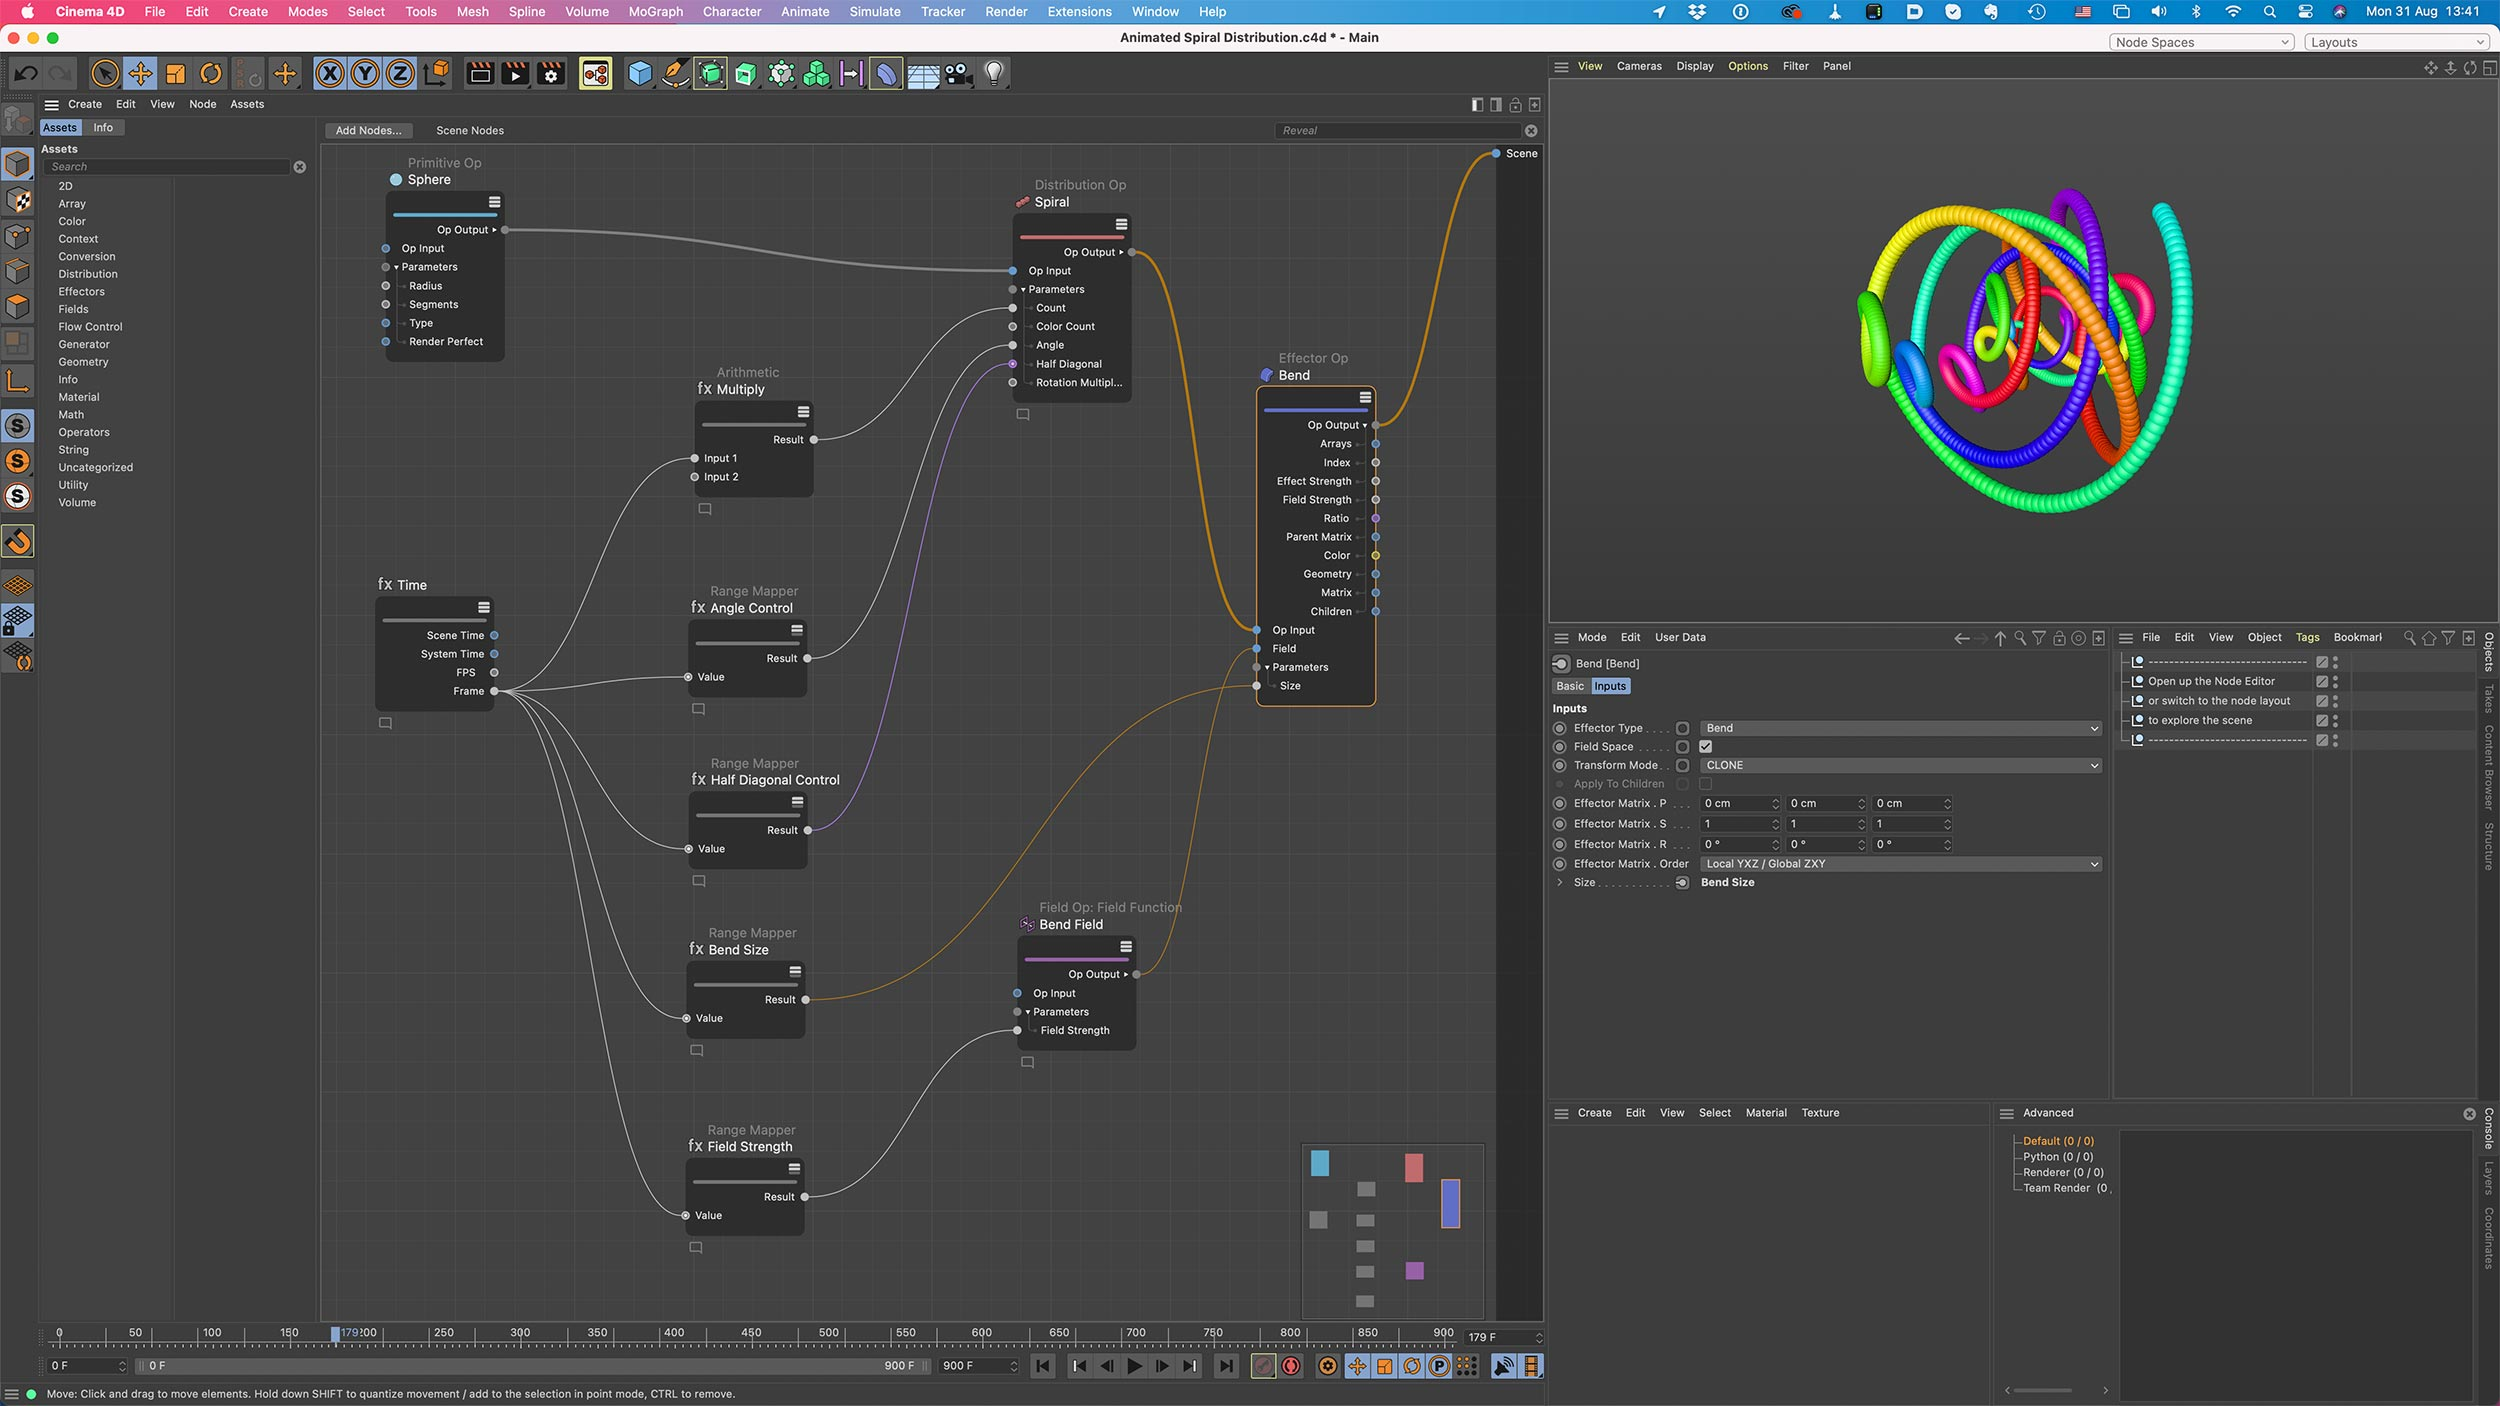 Maxon announces Cinema 4D R23 with new animation tools